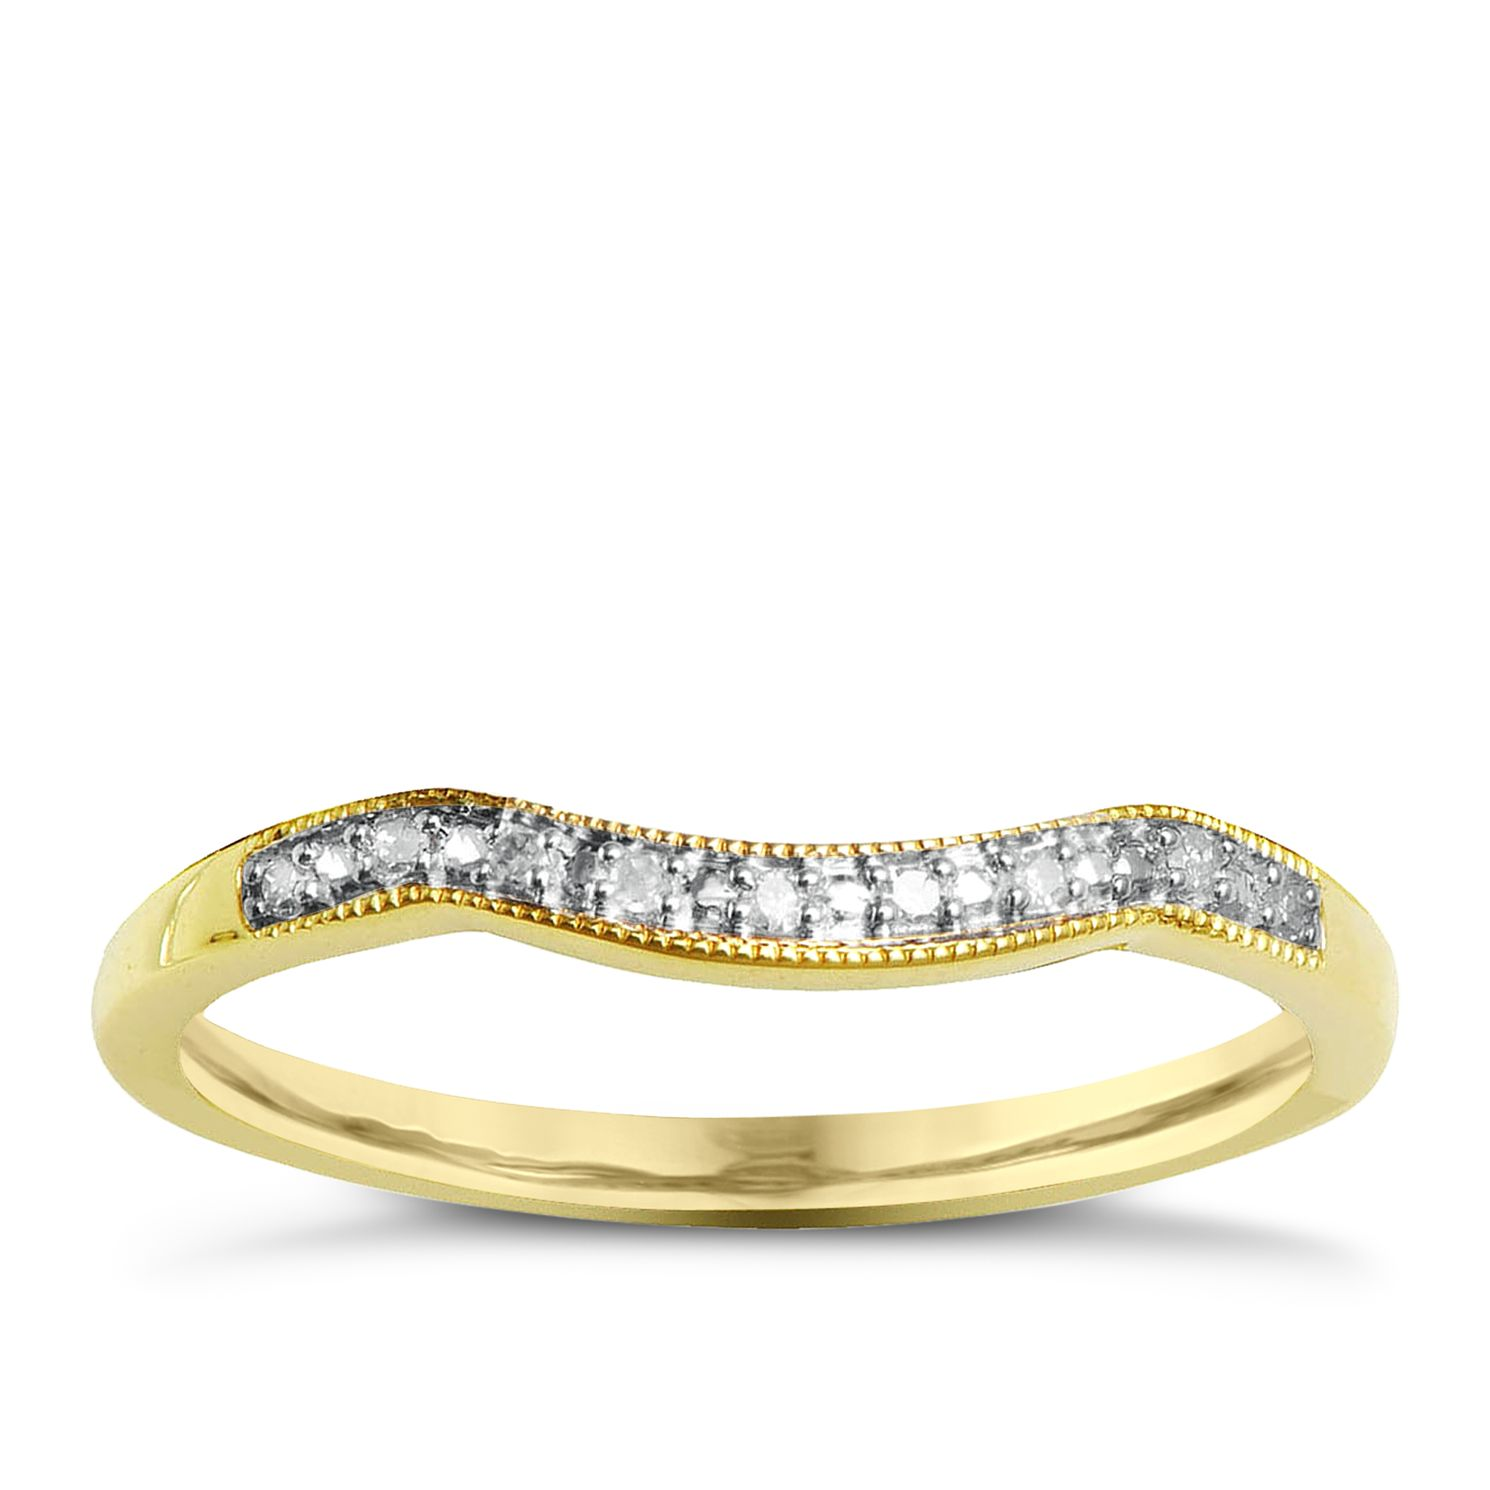 Perfect Fit 9ct Yellow Gold And Diamond Eternity Ring - Product number 2310759